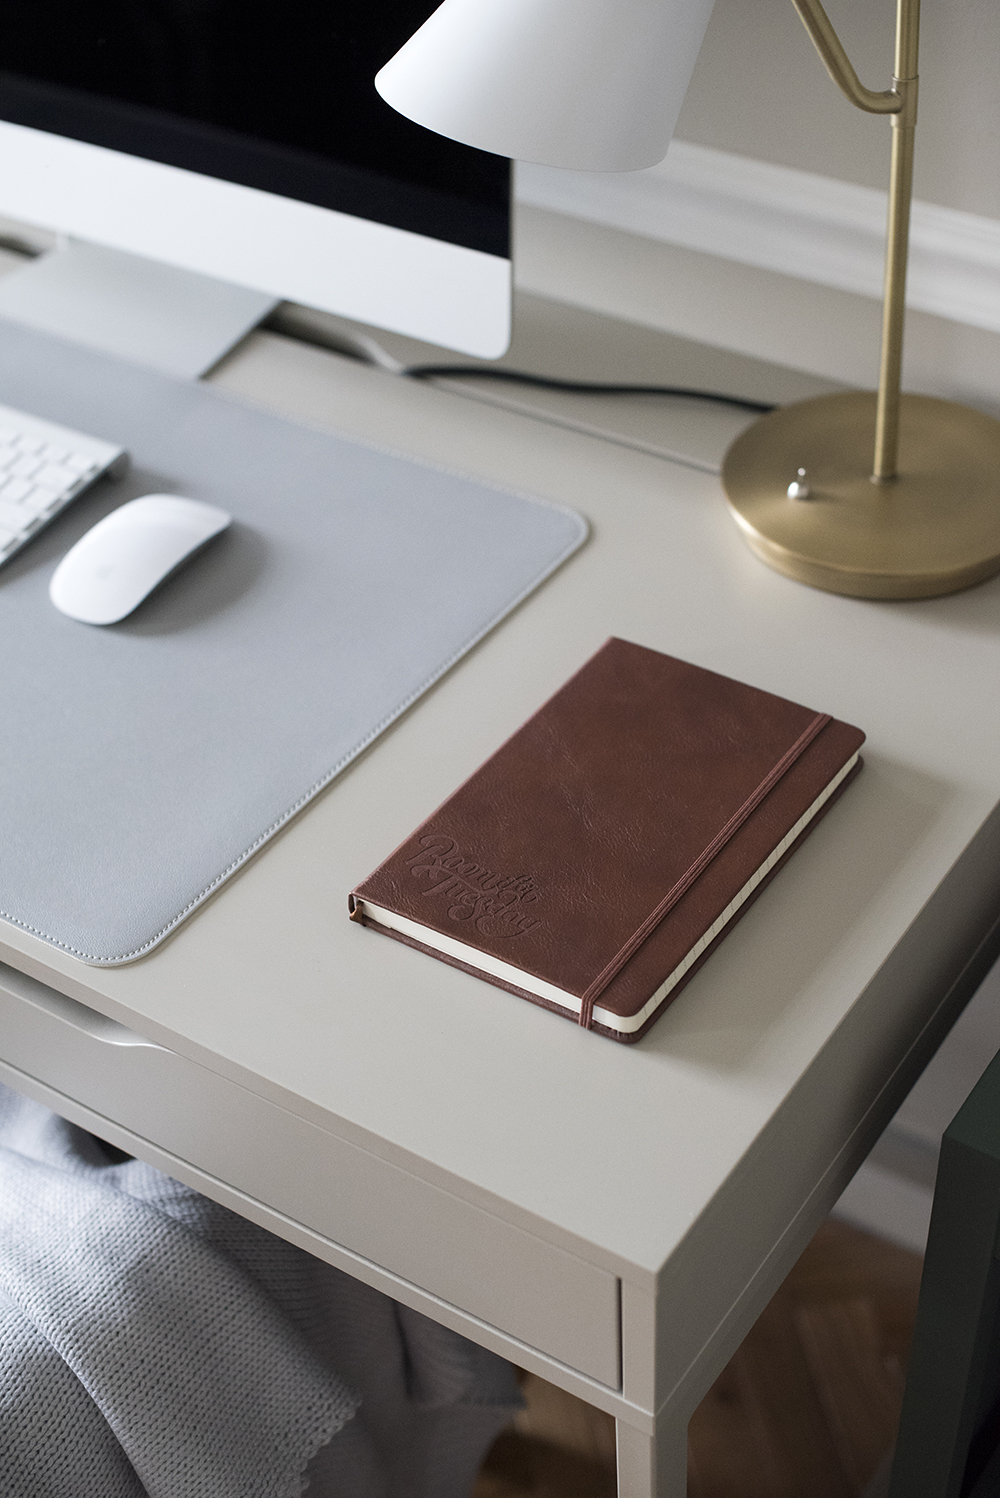 Roundup : 2020 Planners - roomfortuesday.com